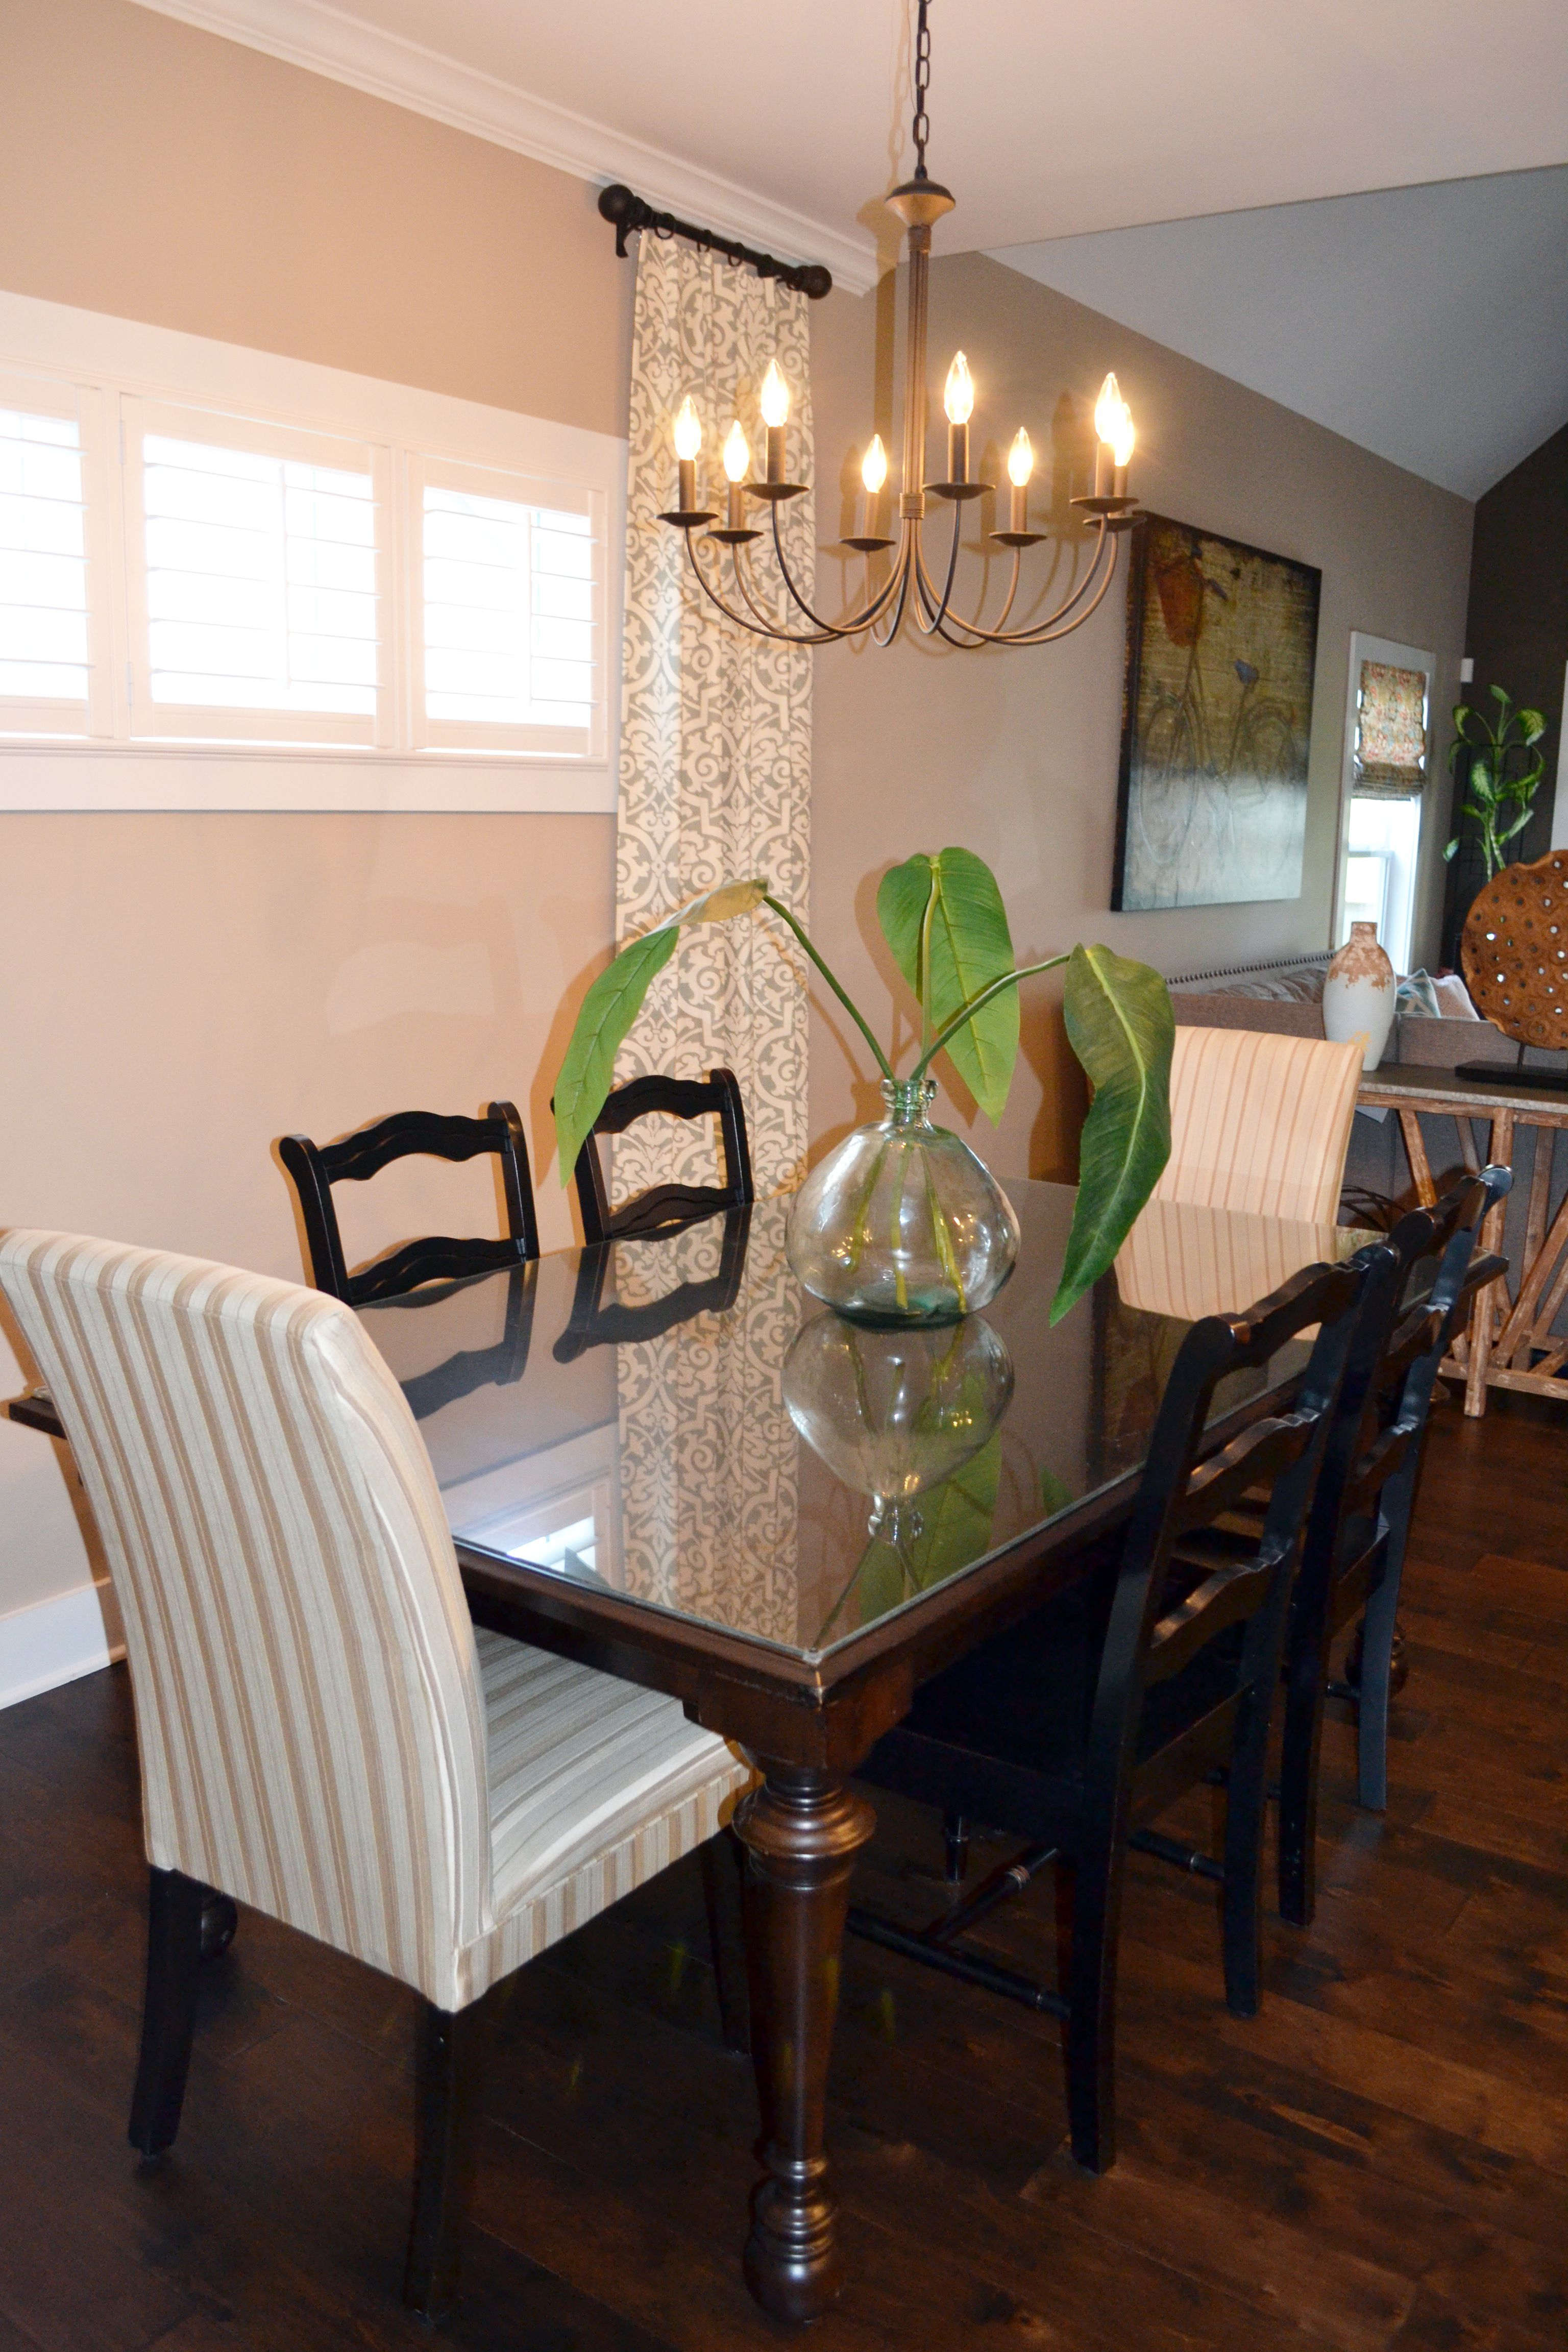 2016 Parade of Homes Bowling Green KY Home, Home